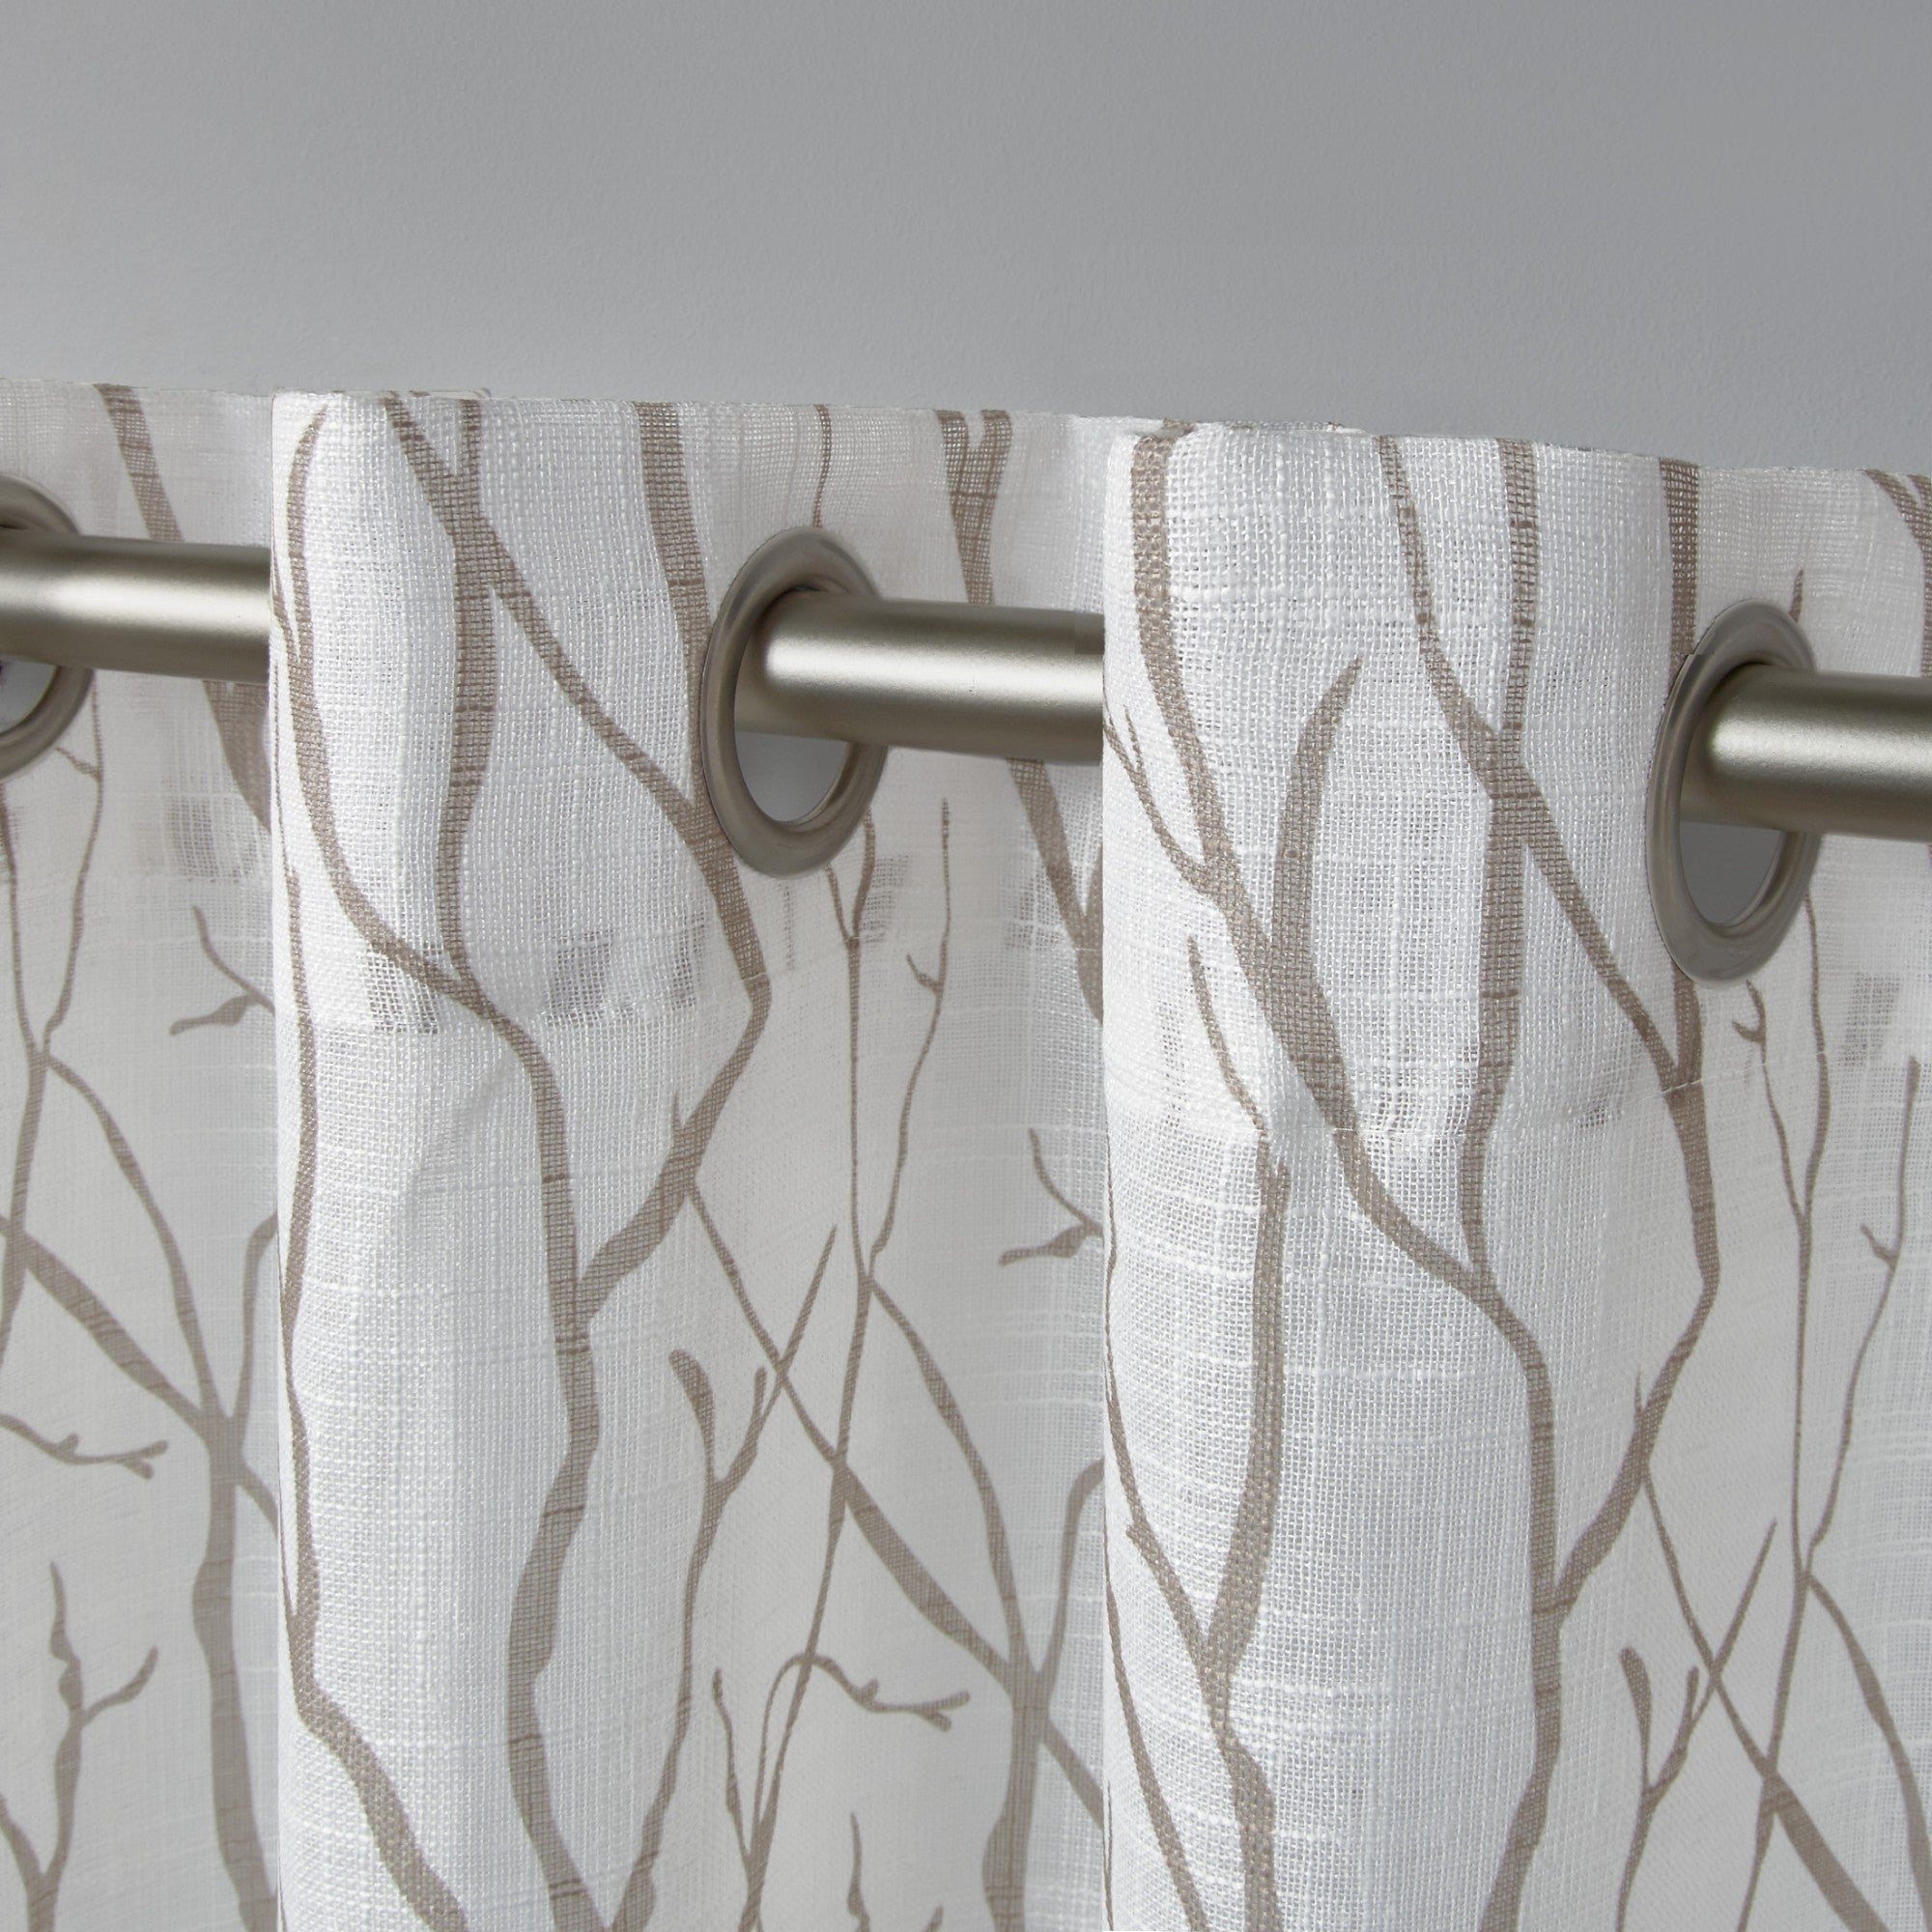 Ati Home Oakdale Textured Linen Sheer Grommet Top Curtain Panel Pair Within Oakdale Textured Linen Sheer Grommet Top Curtain Panel Pairs (View 5 of 20)